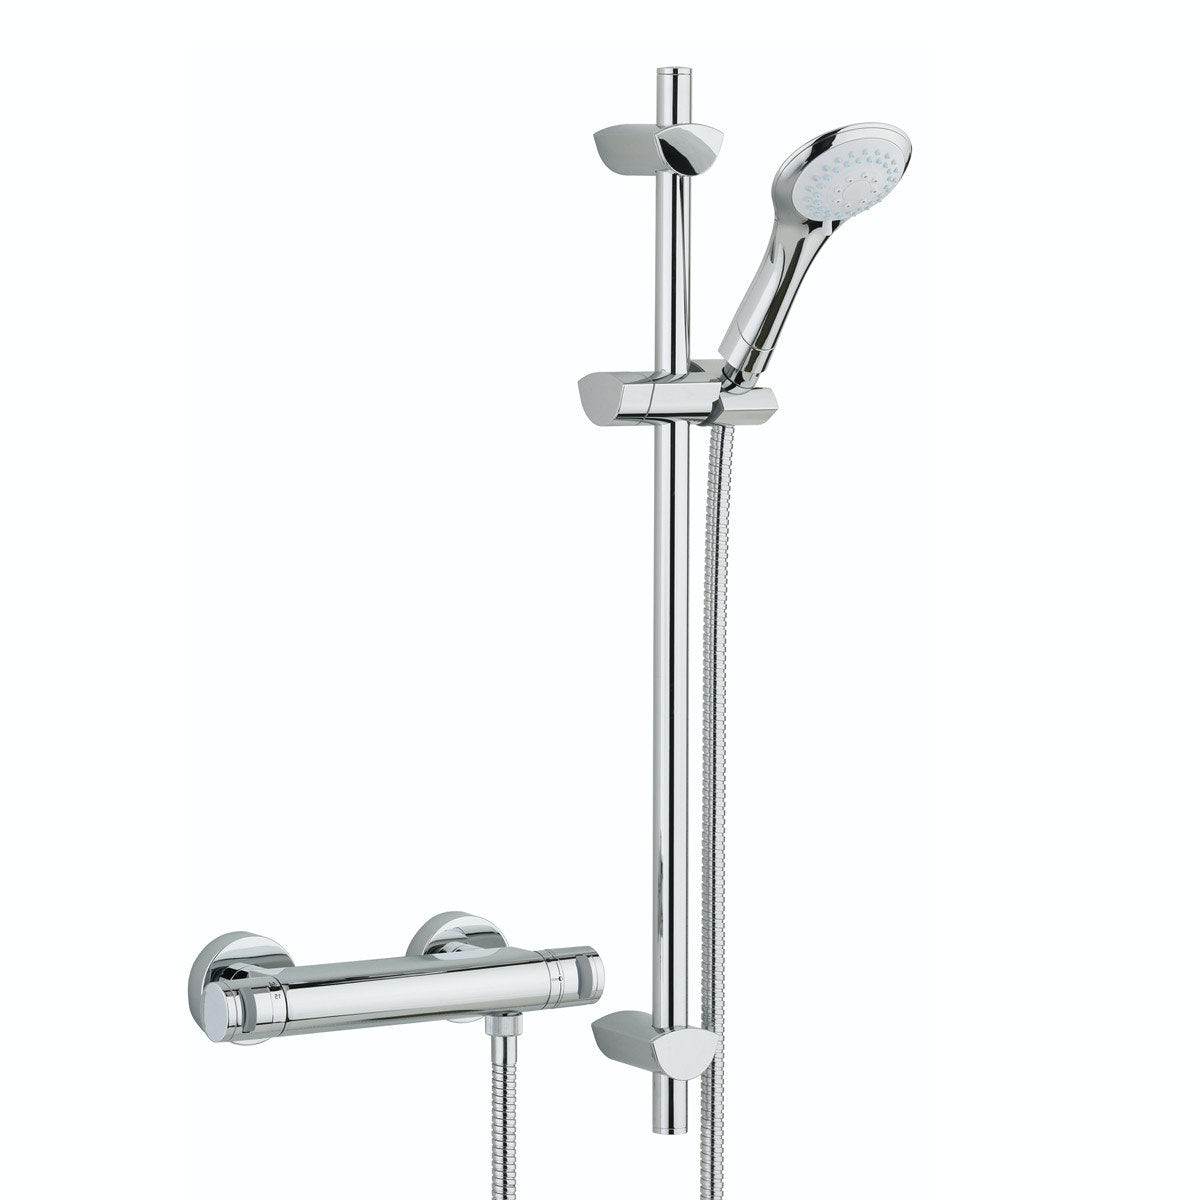 Bristan Artisan thermostatic bar shower valve with slider rail kit